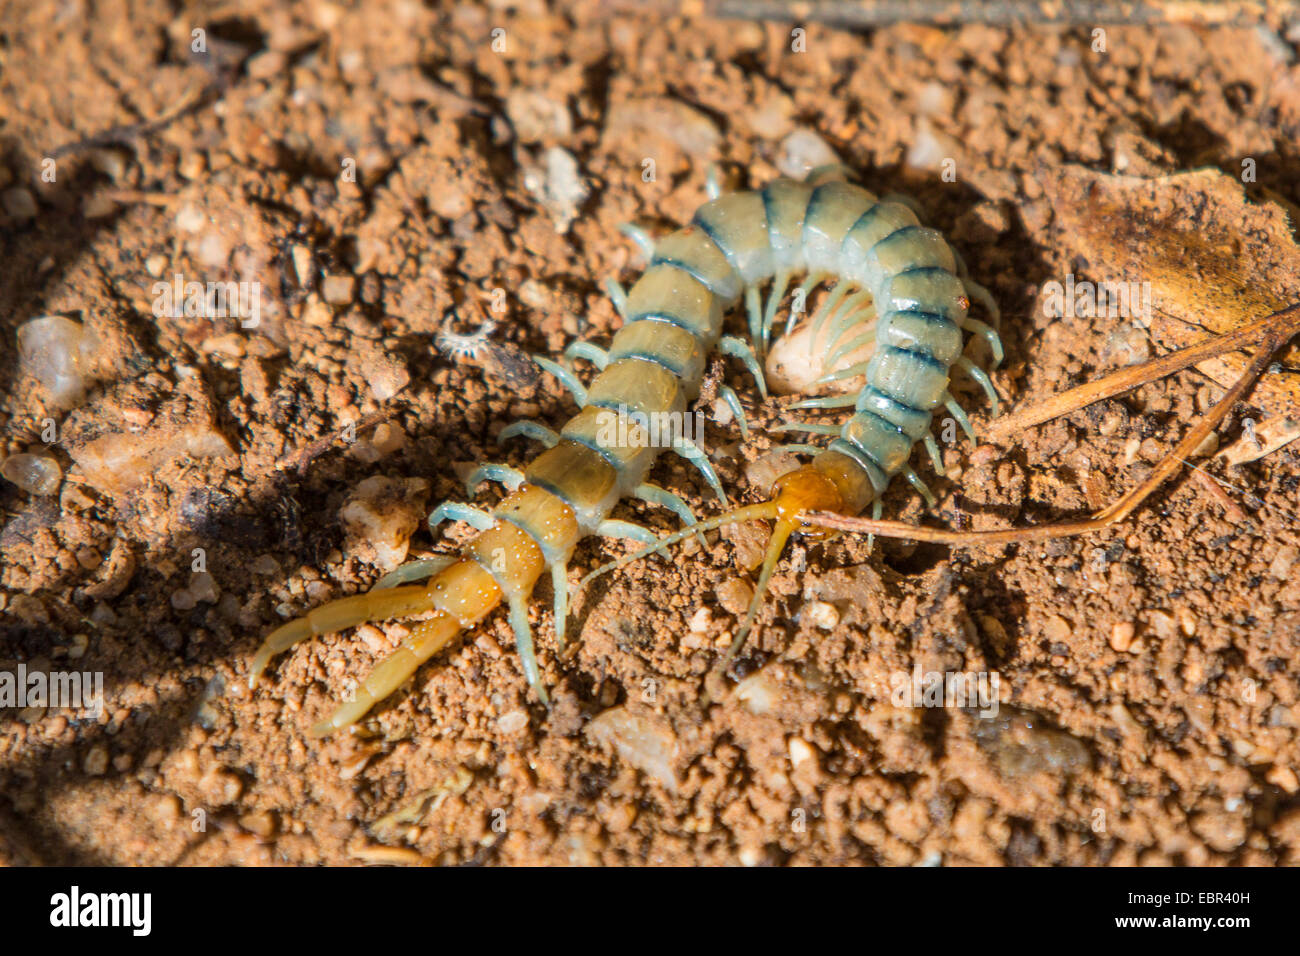 Millepede scolopendra stockfotos millepede scolopendra for Boden clothing deutschland